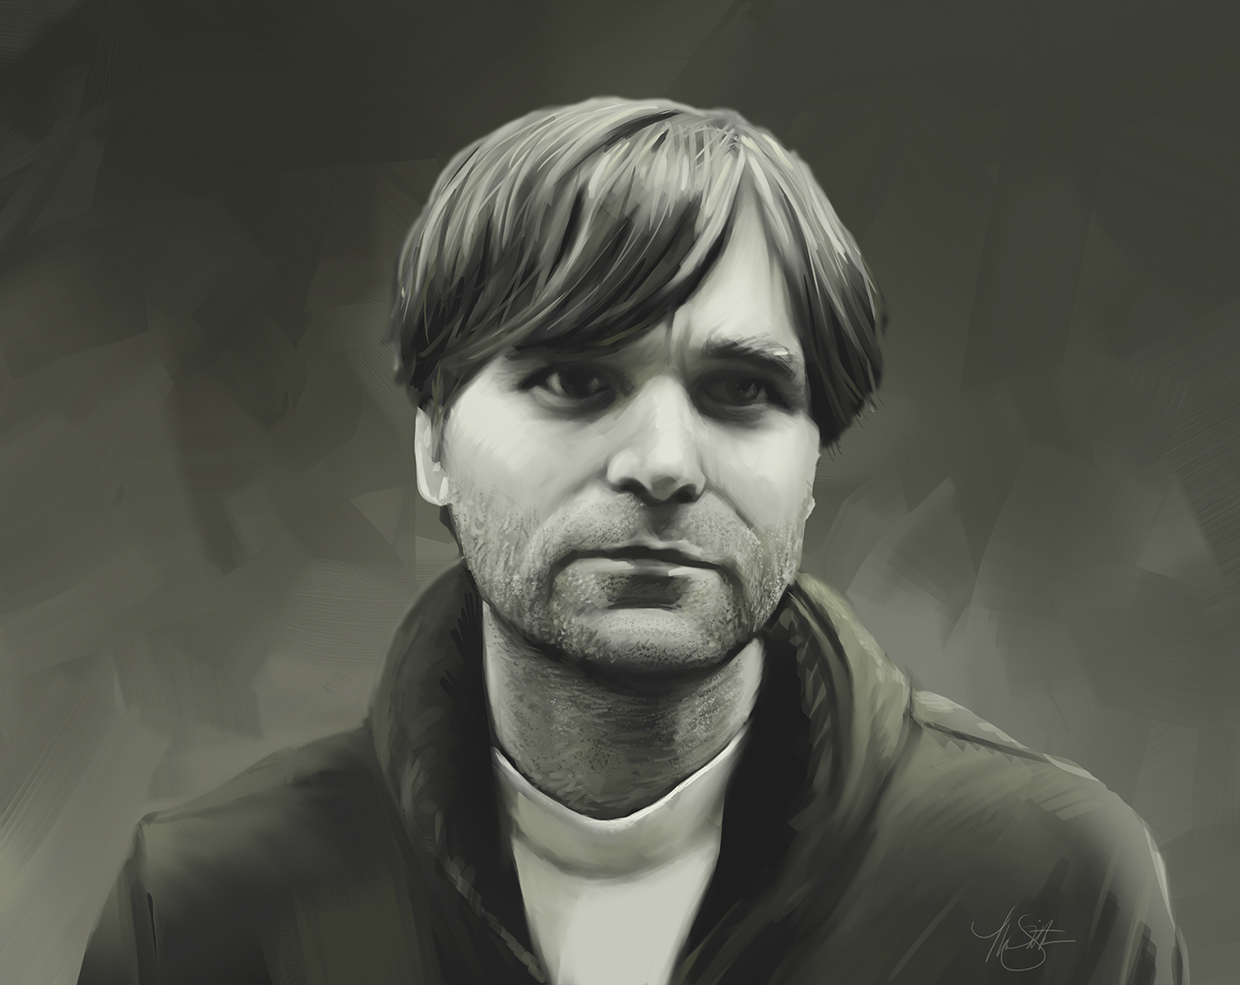 A portrait of Ben Gibbard